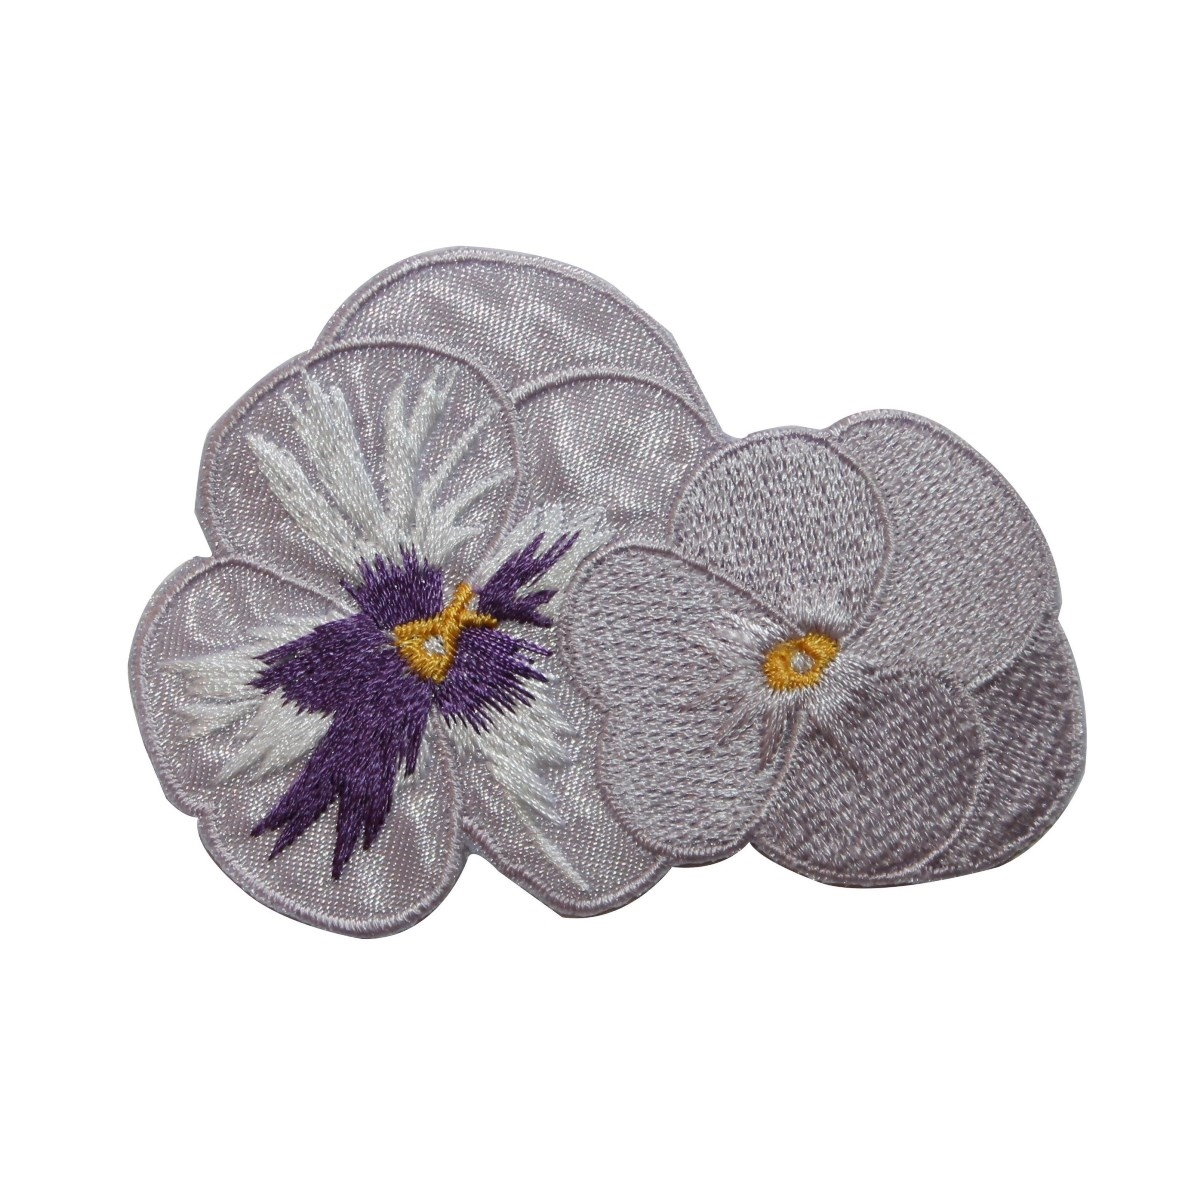 ID 6530 White Pansy Flowers Blossom Patch Garden Embroidered Iron On Applique